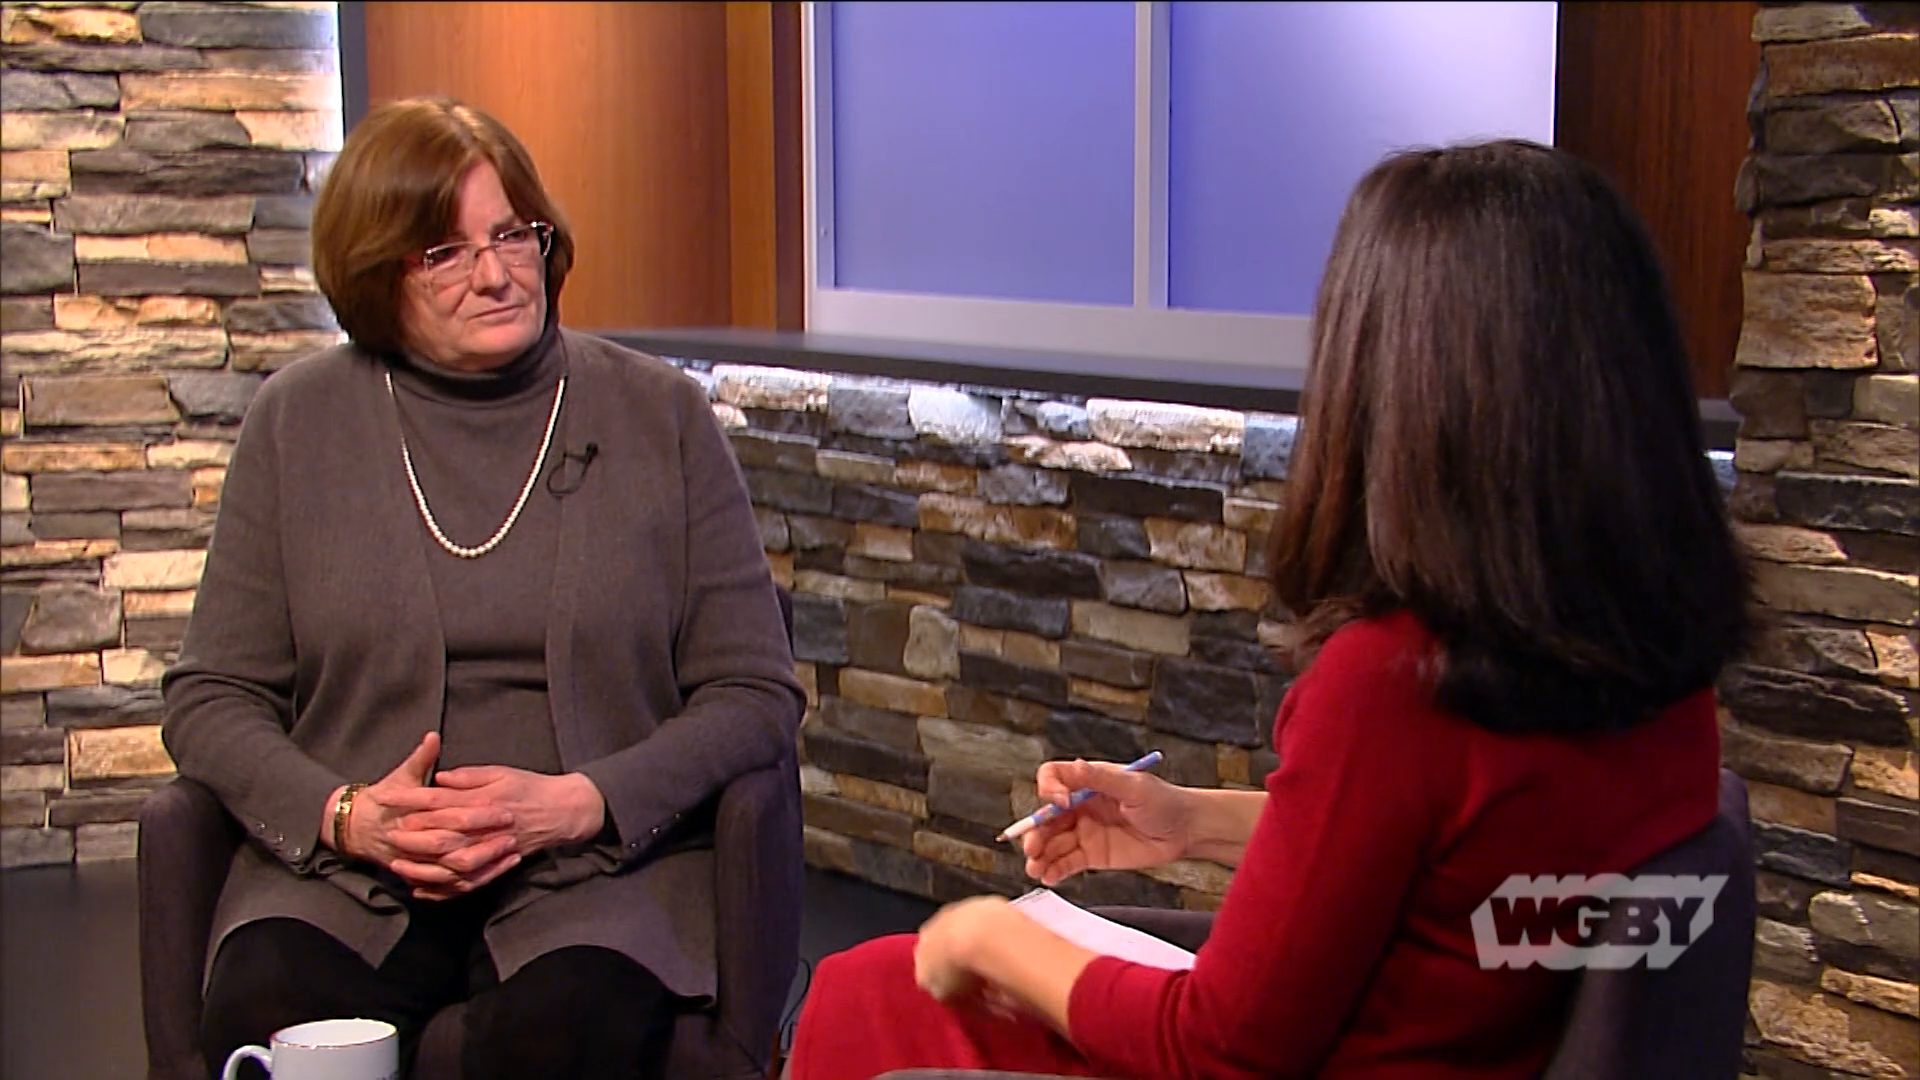 WCA Western Mass's Elizabeth Dineen sheds light on local programs to help women and men who are victims of domestic violence.